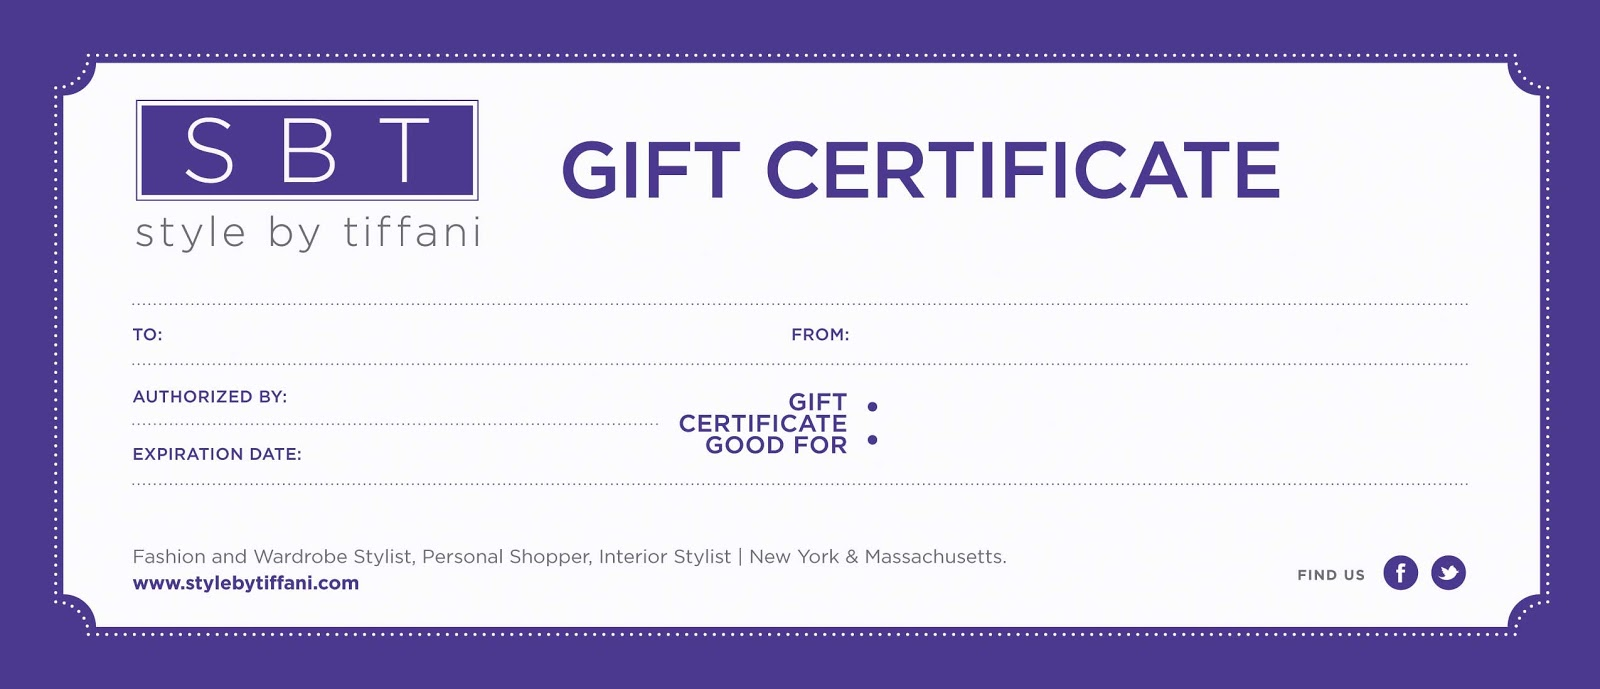 Gift Certificates Samples Free Paper Templates With Borders Style By  Tiffani Gift Certificate Gift Certificates Sampleshtml  Gift Certificate Samples